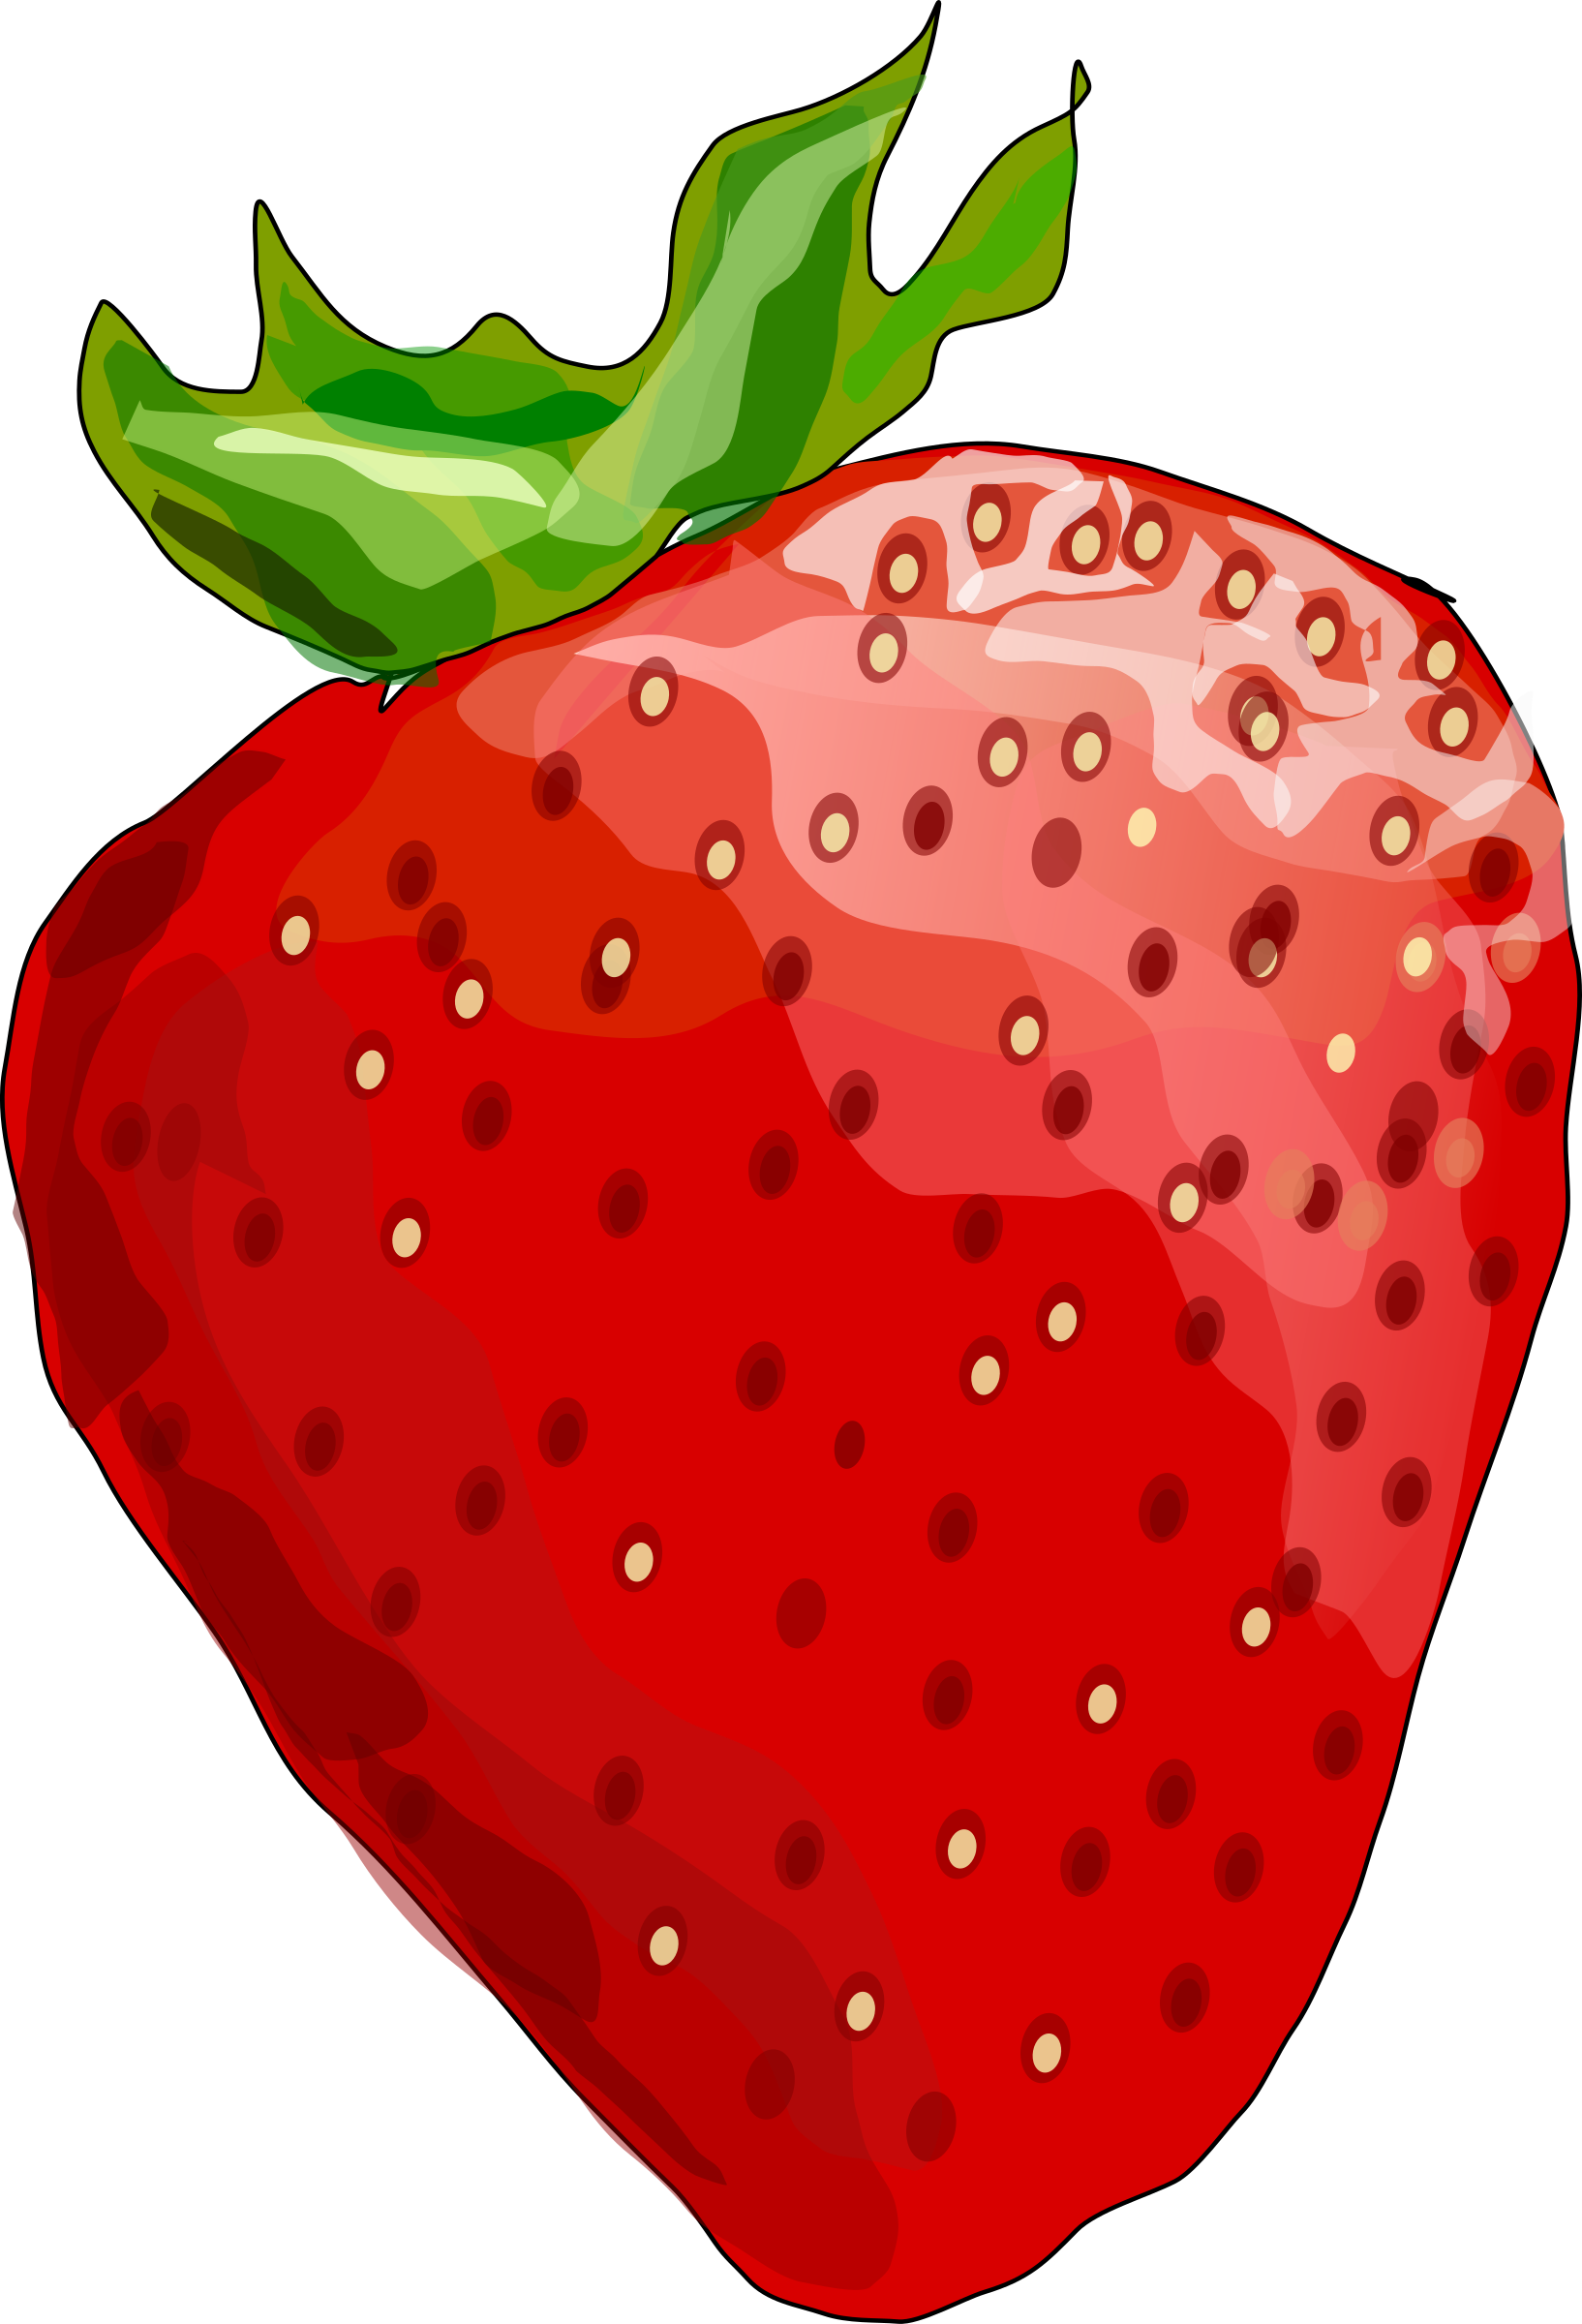 Strawberries clipart draw. Strawberry